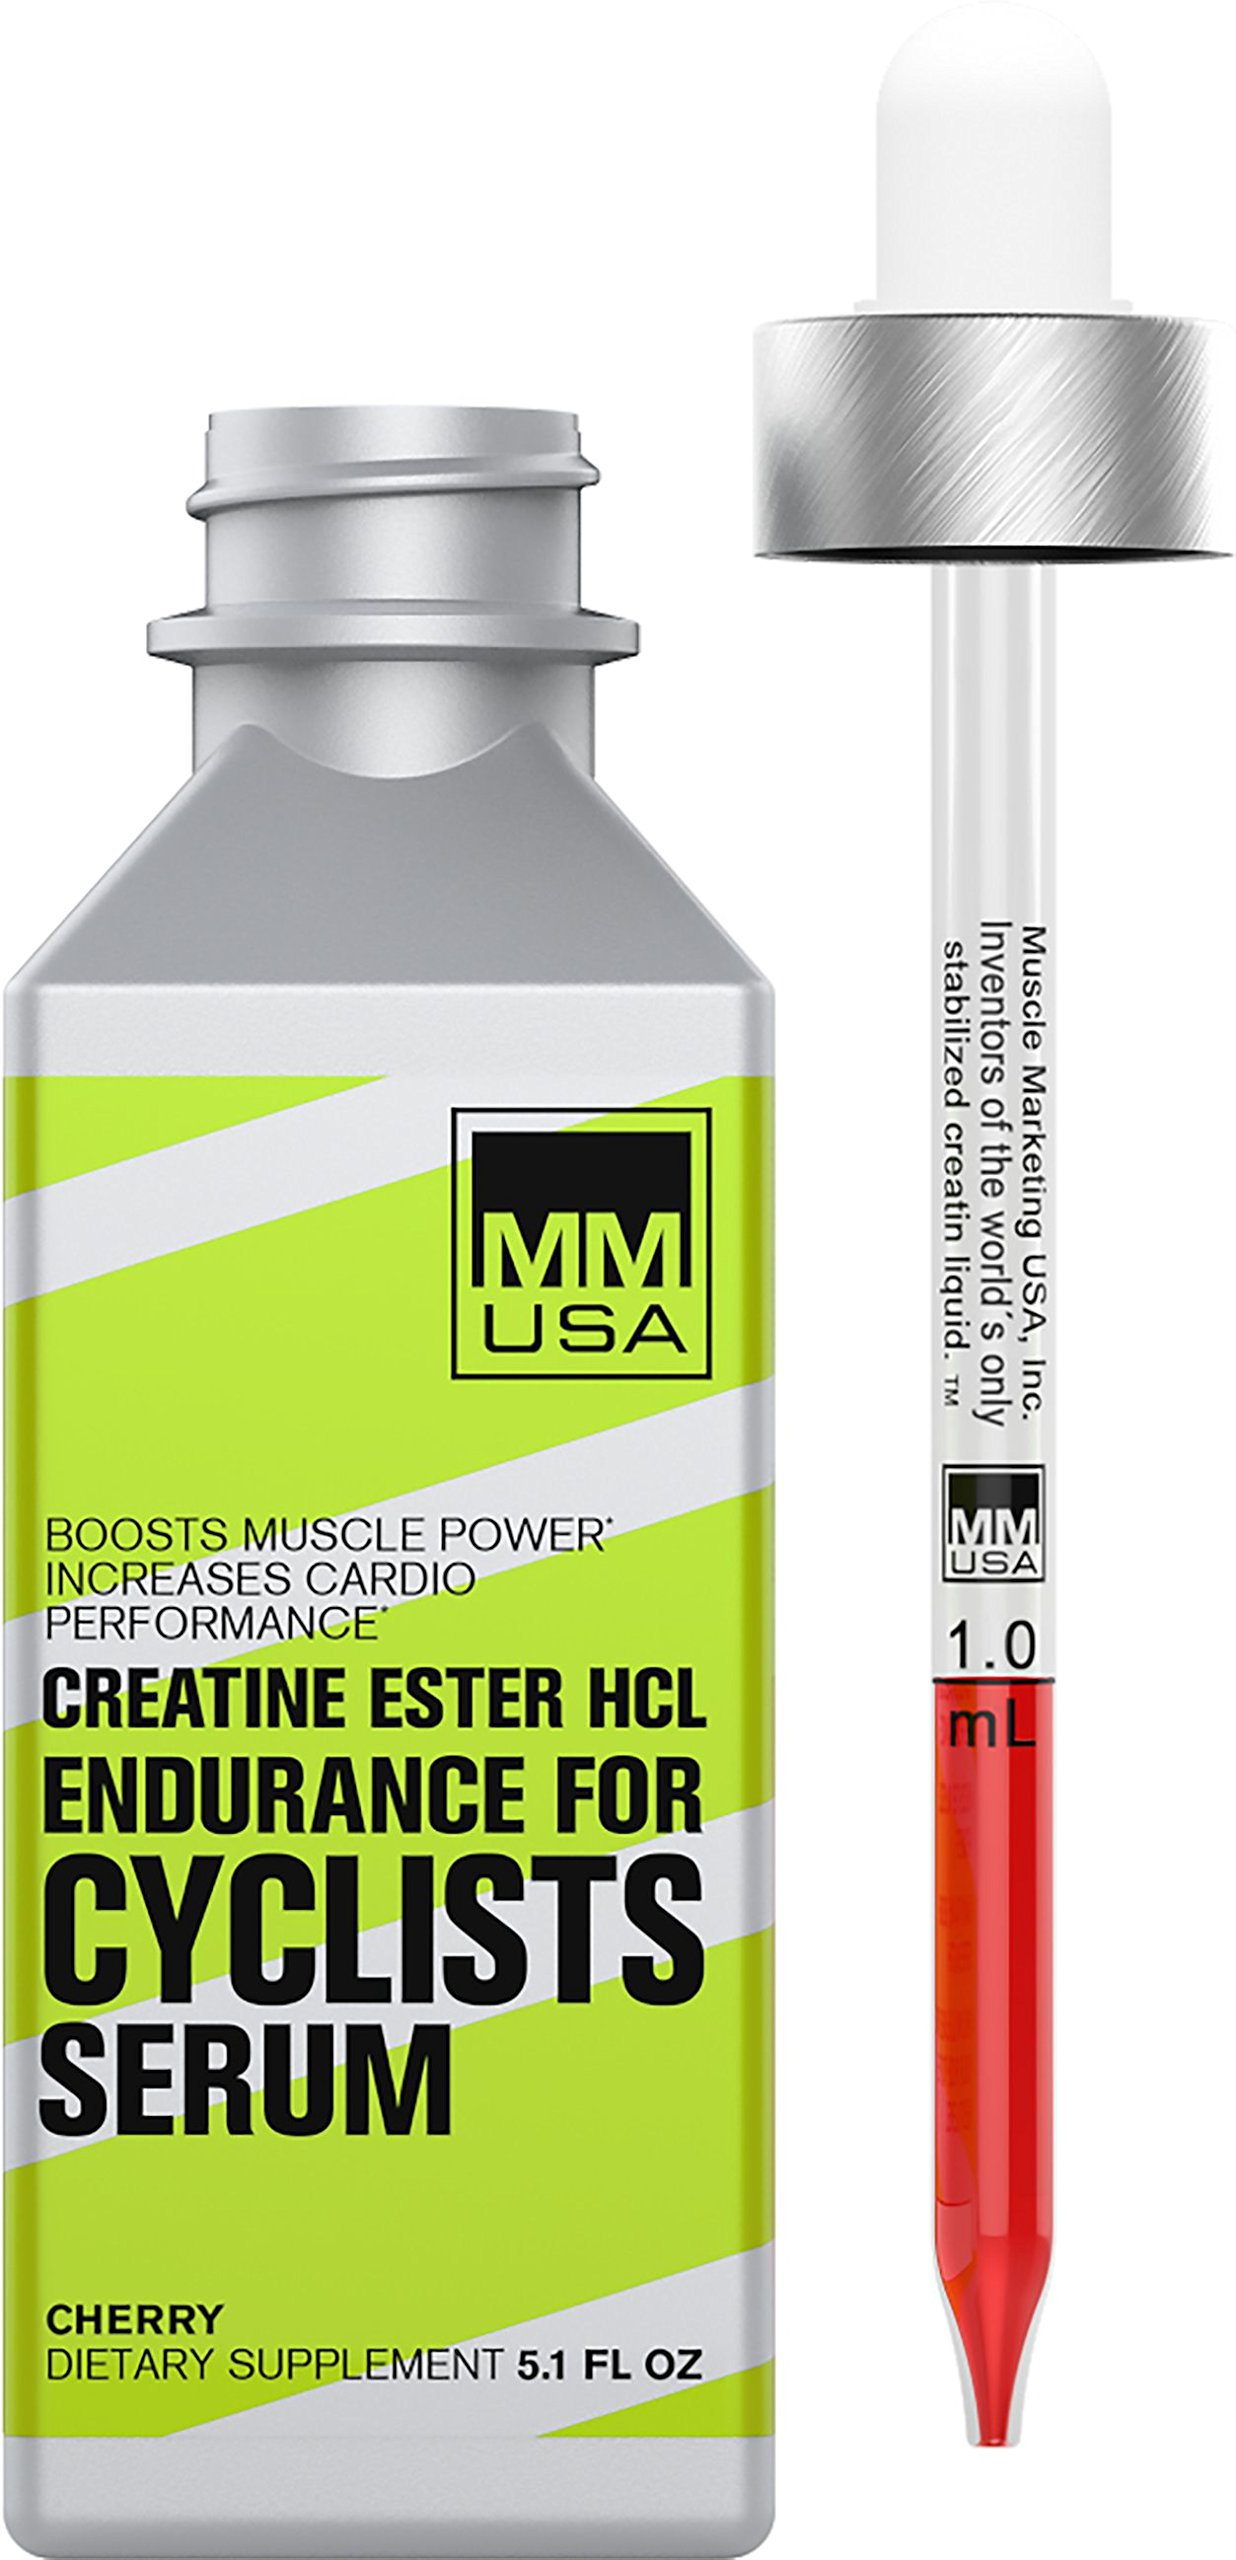 Endurance cycling serum by MMUSA, Improves Core Strength, Stable Creatine HCL, Defeats lactic acid, Energy, Endurance + Power. No water gains. Guarana, L-Carnitine, Rhodiola Rosea + Green tea.